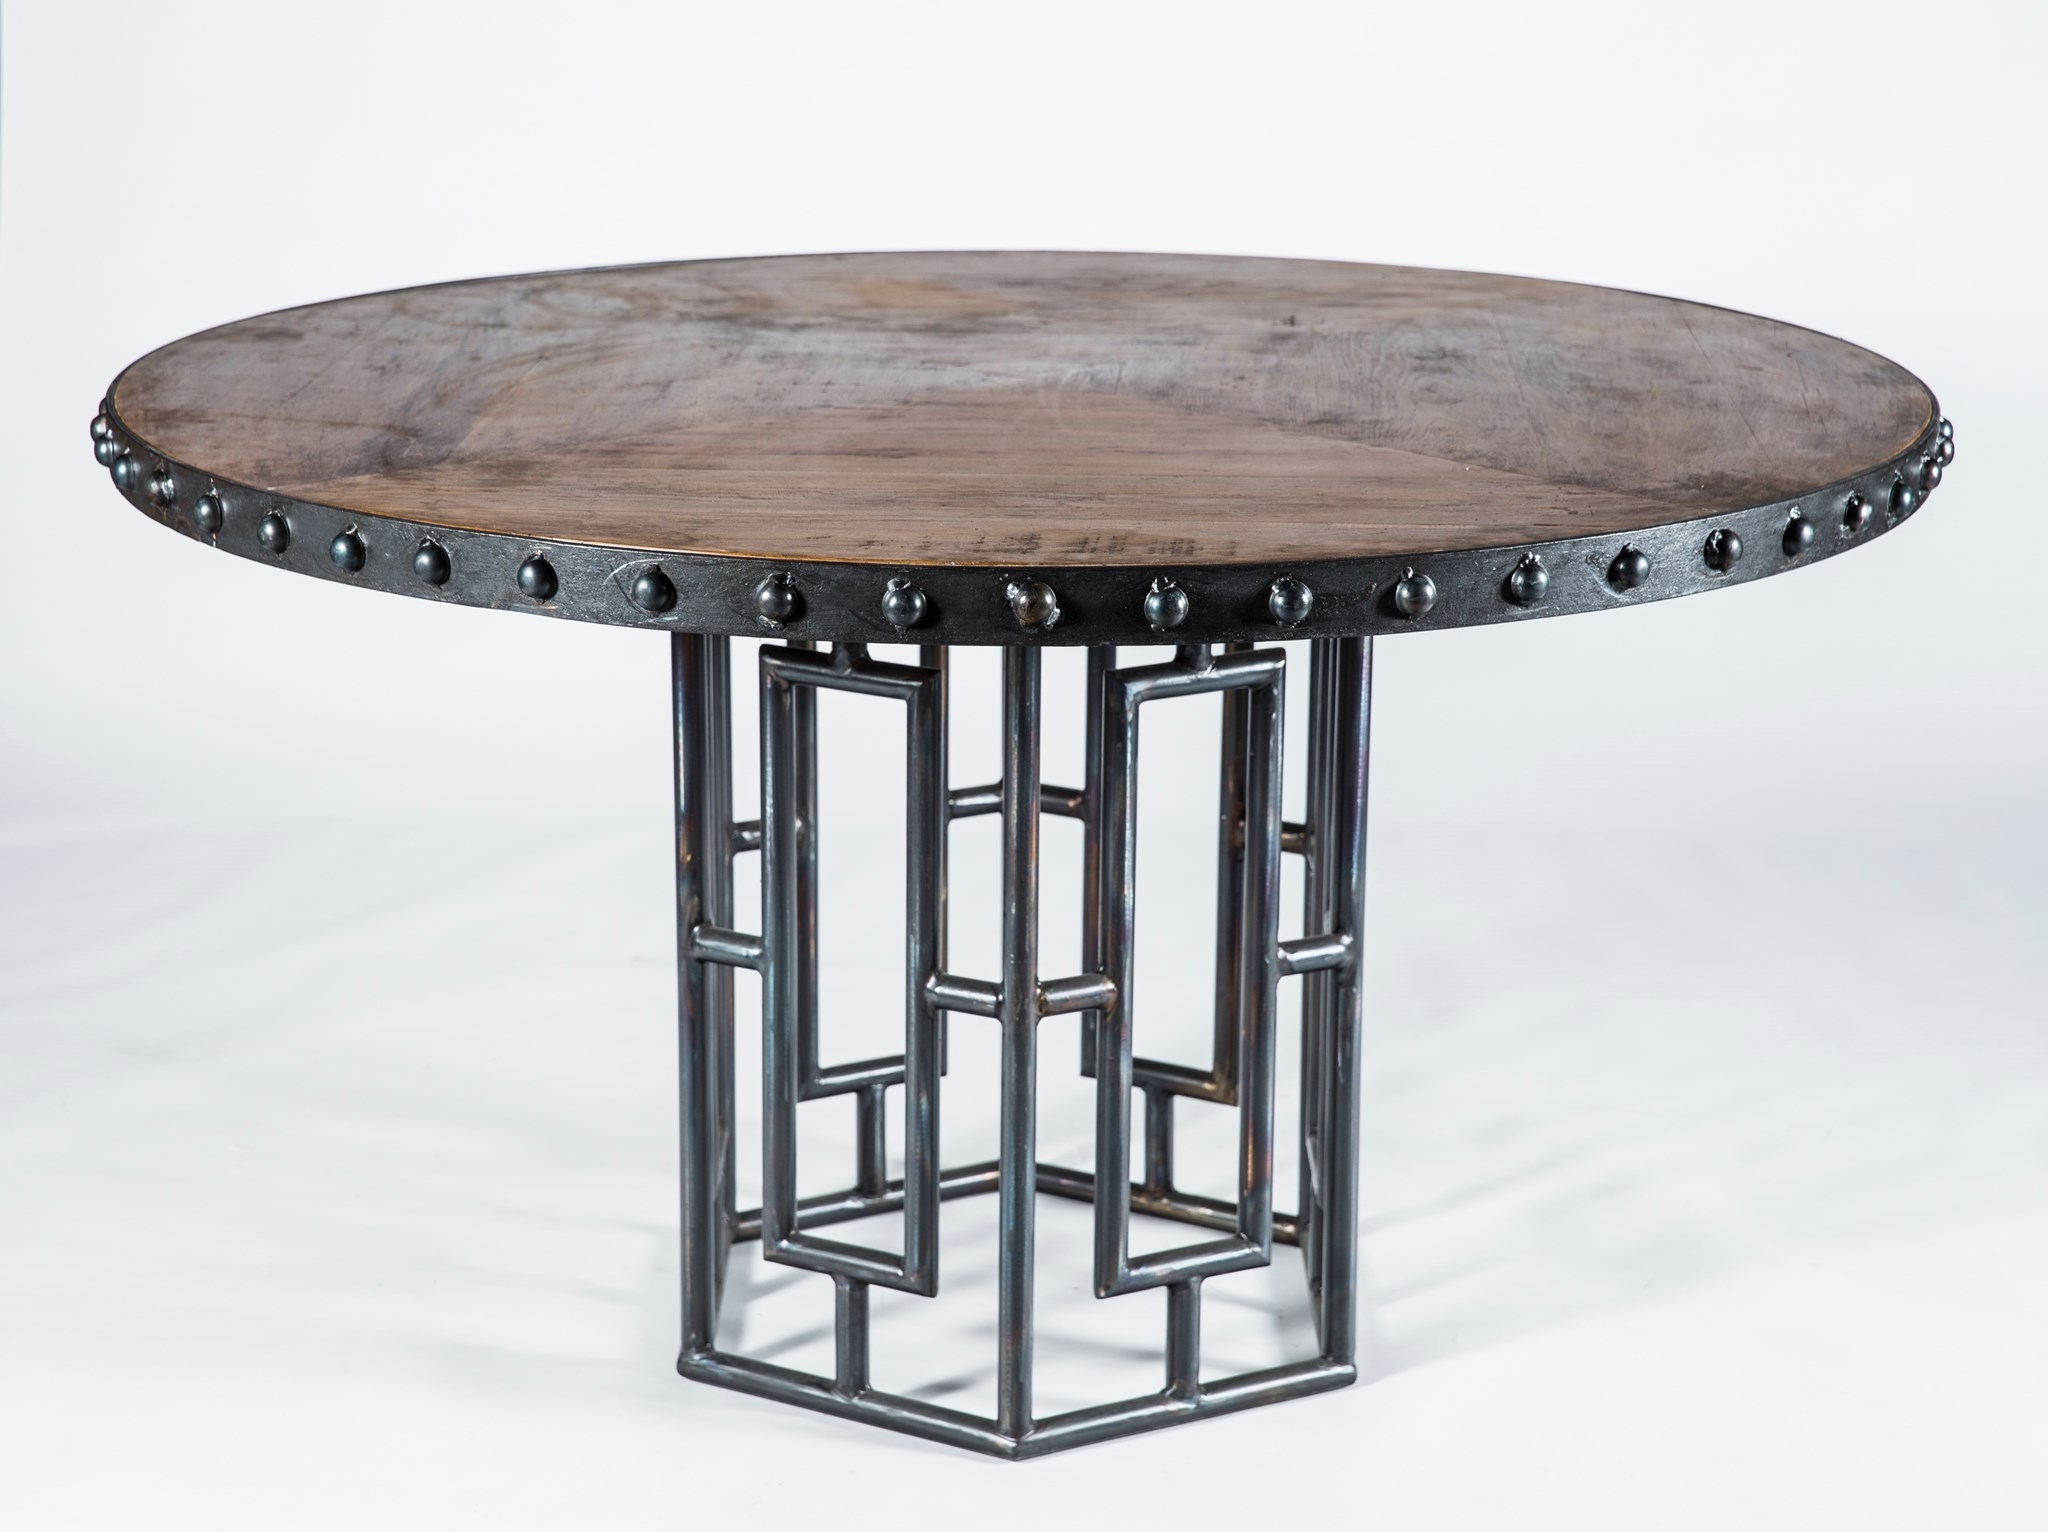 Hudson Round Dining Tables Intended For Most Up To Date Hudson Dining Table With 48 Round Wood Top With Iron Nail Head Edge (Gallery 15 of 25)